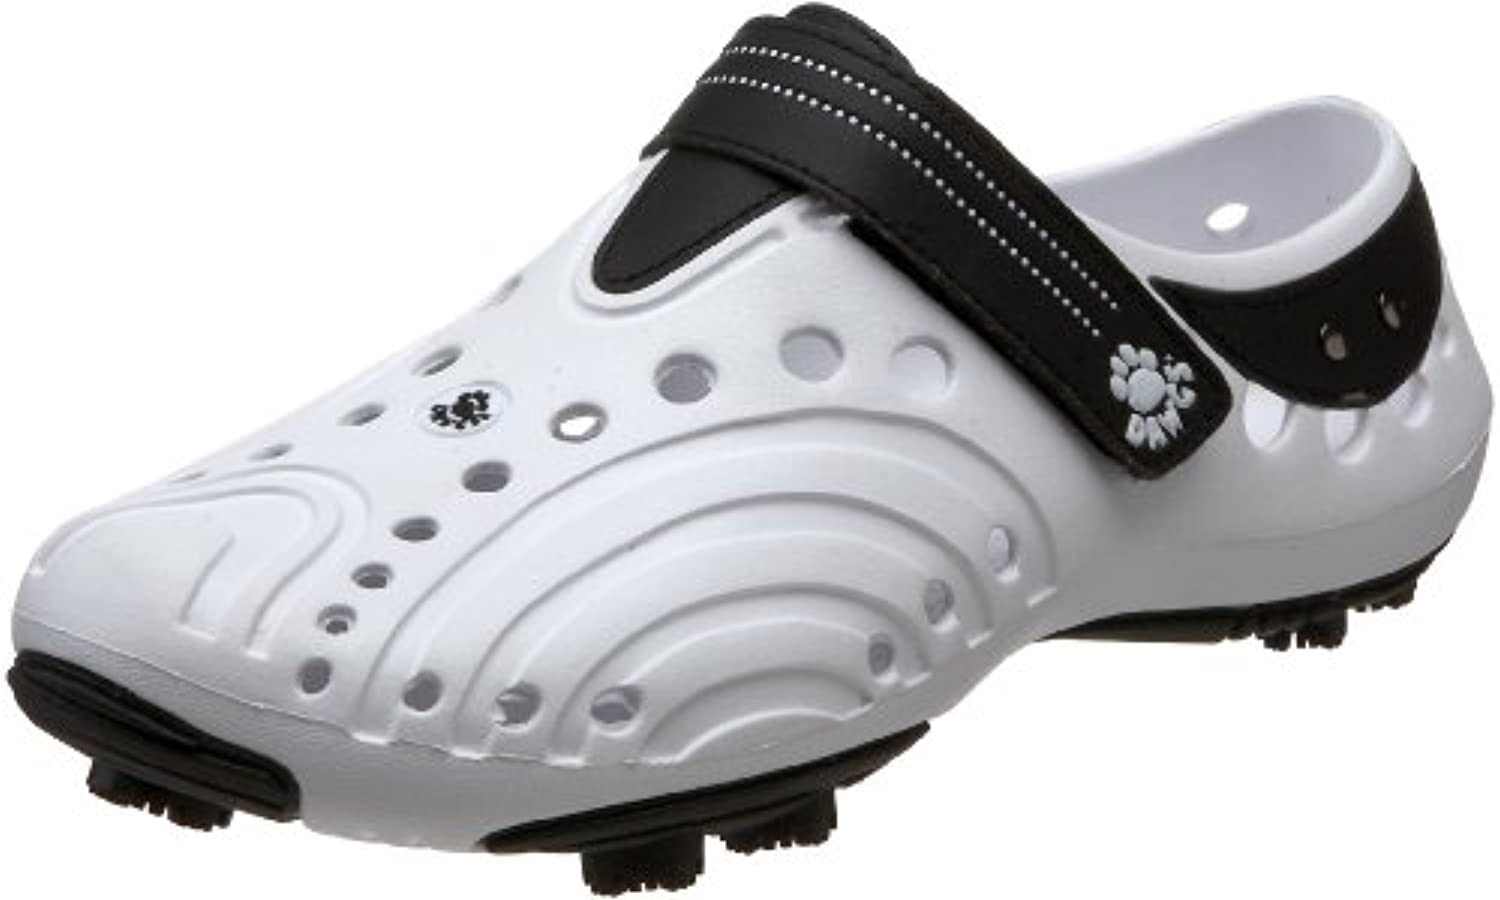 DAWGS Men's Spirit Golf Shoes